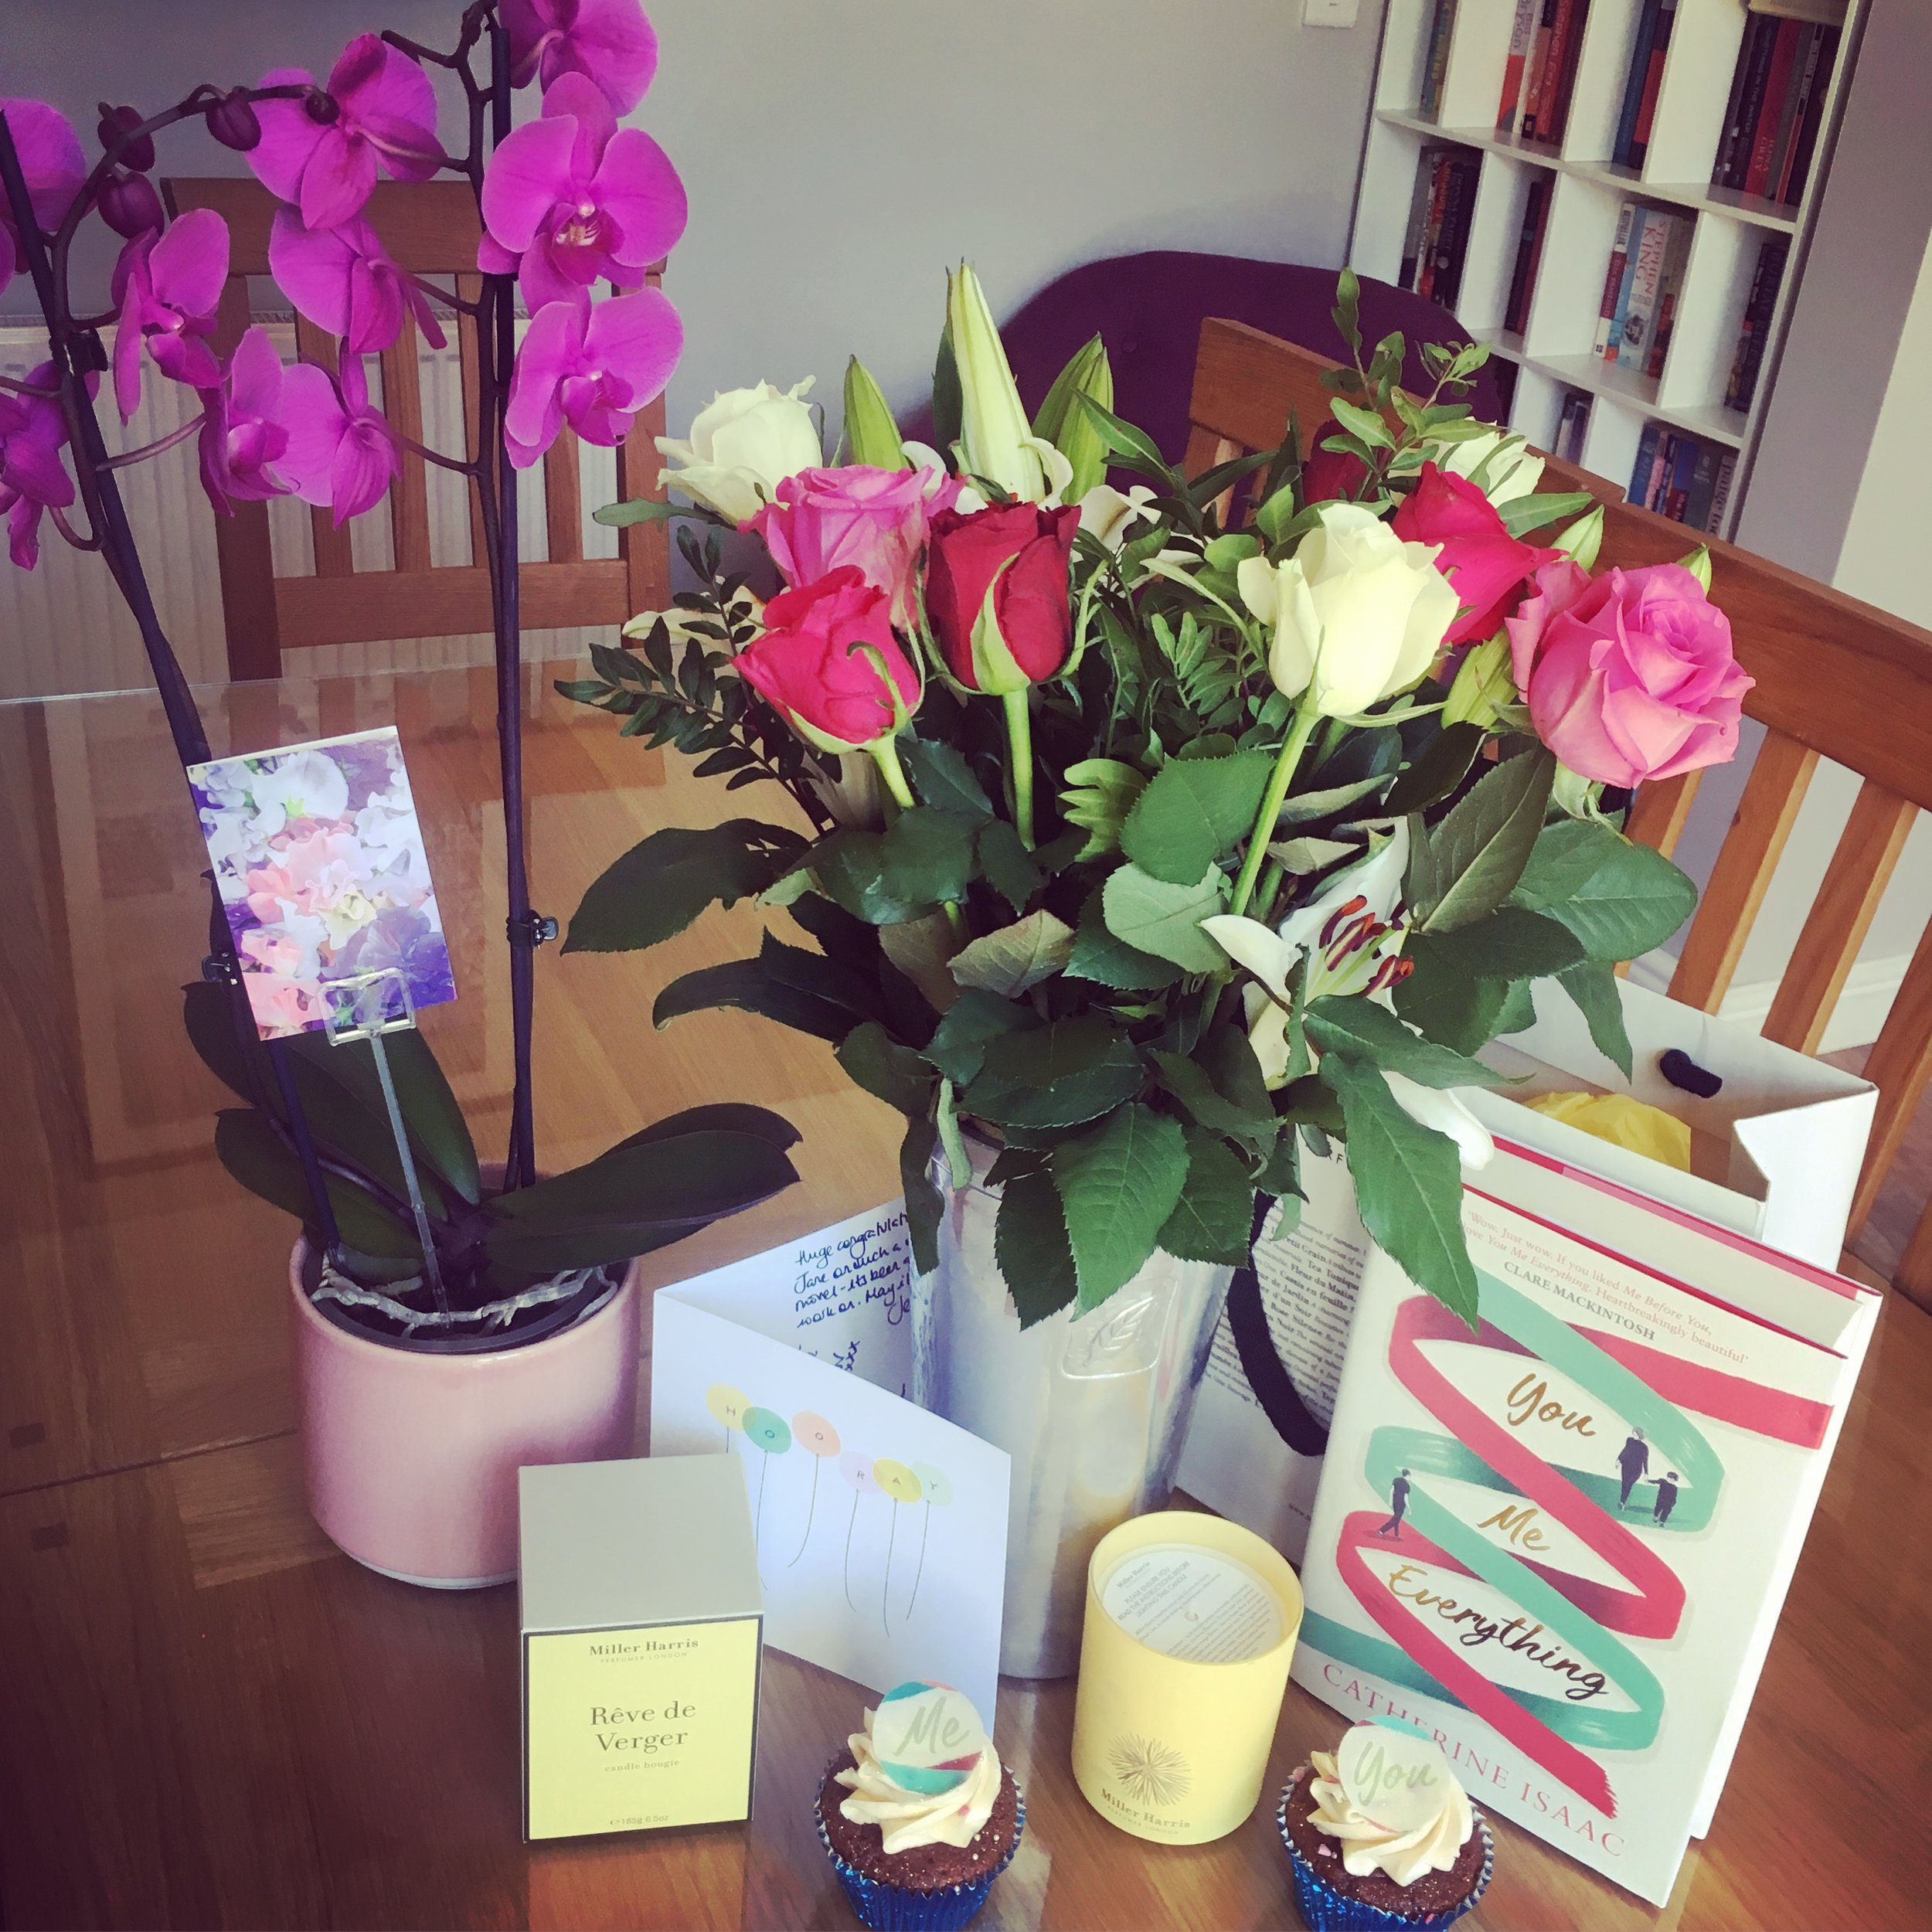 Pub day flowers and gifts!